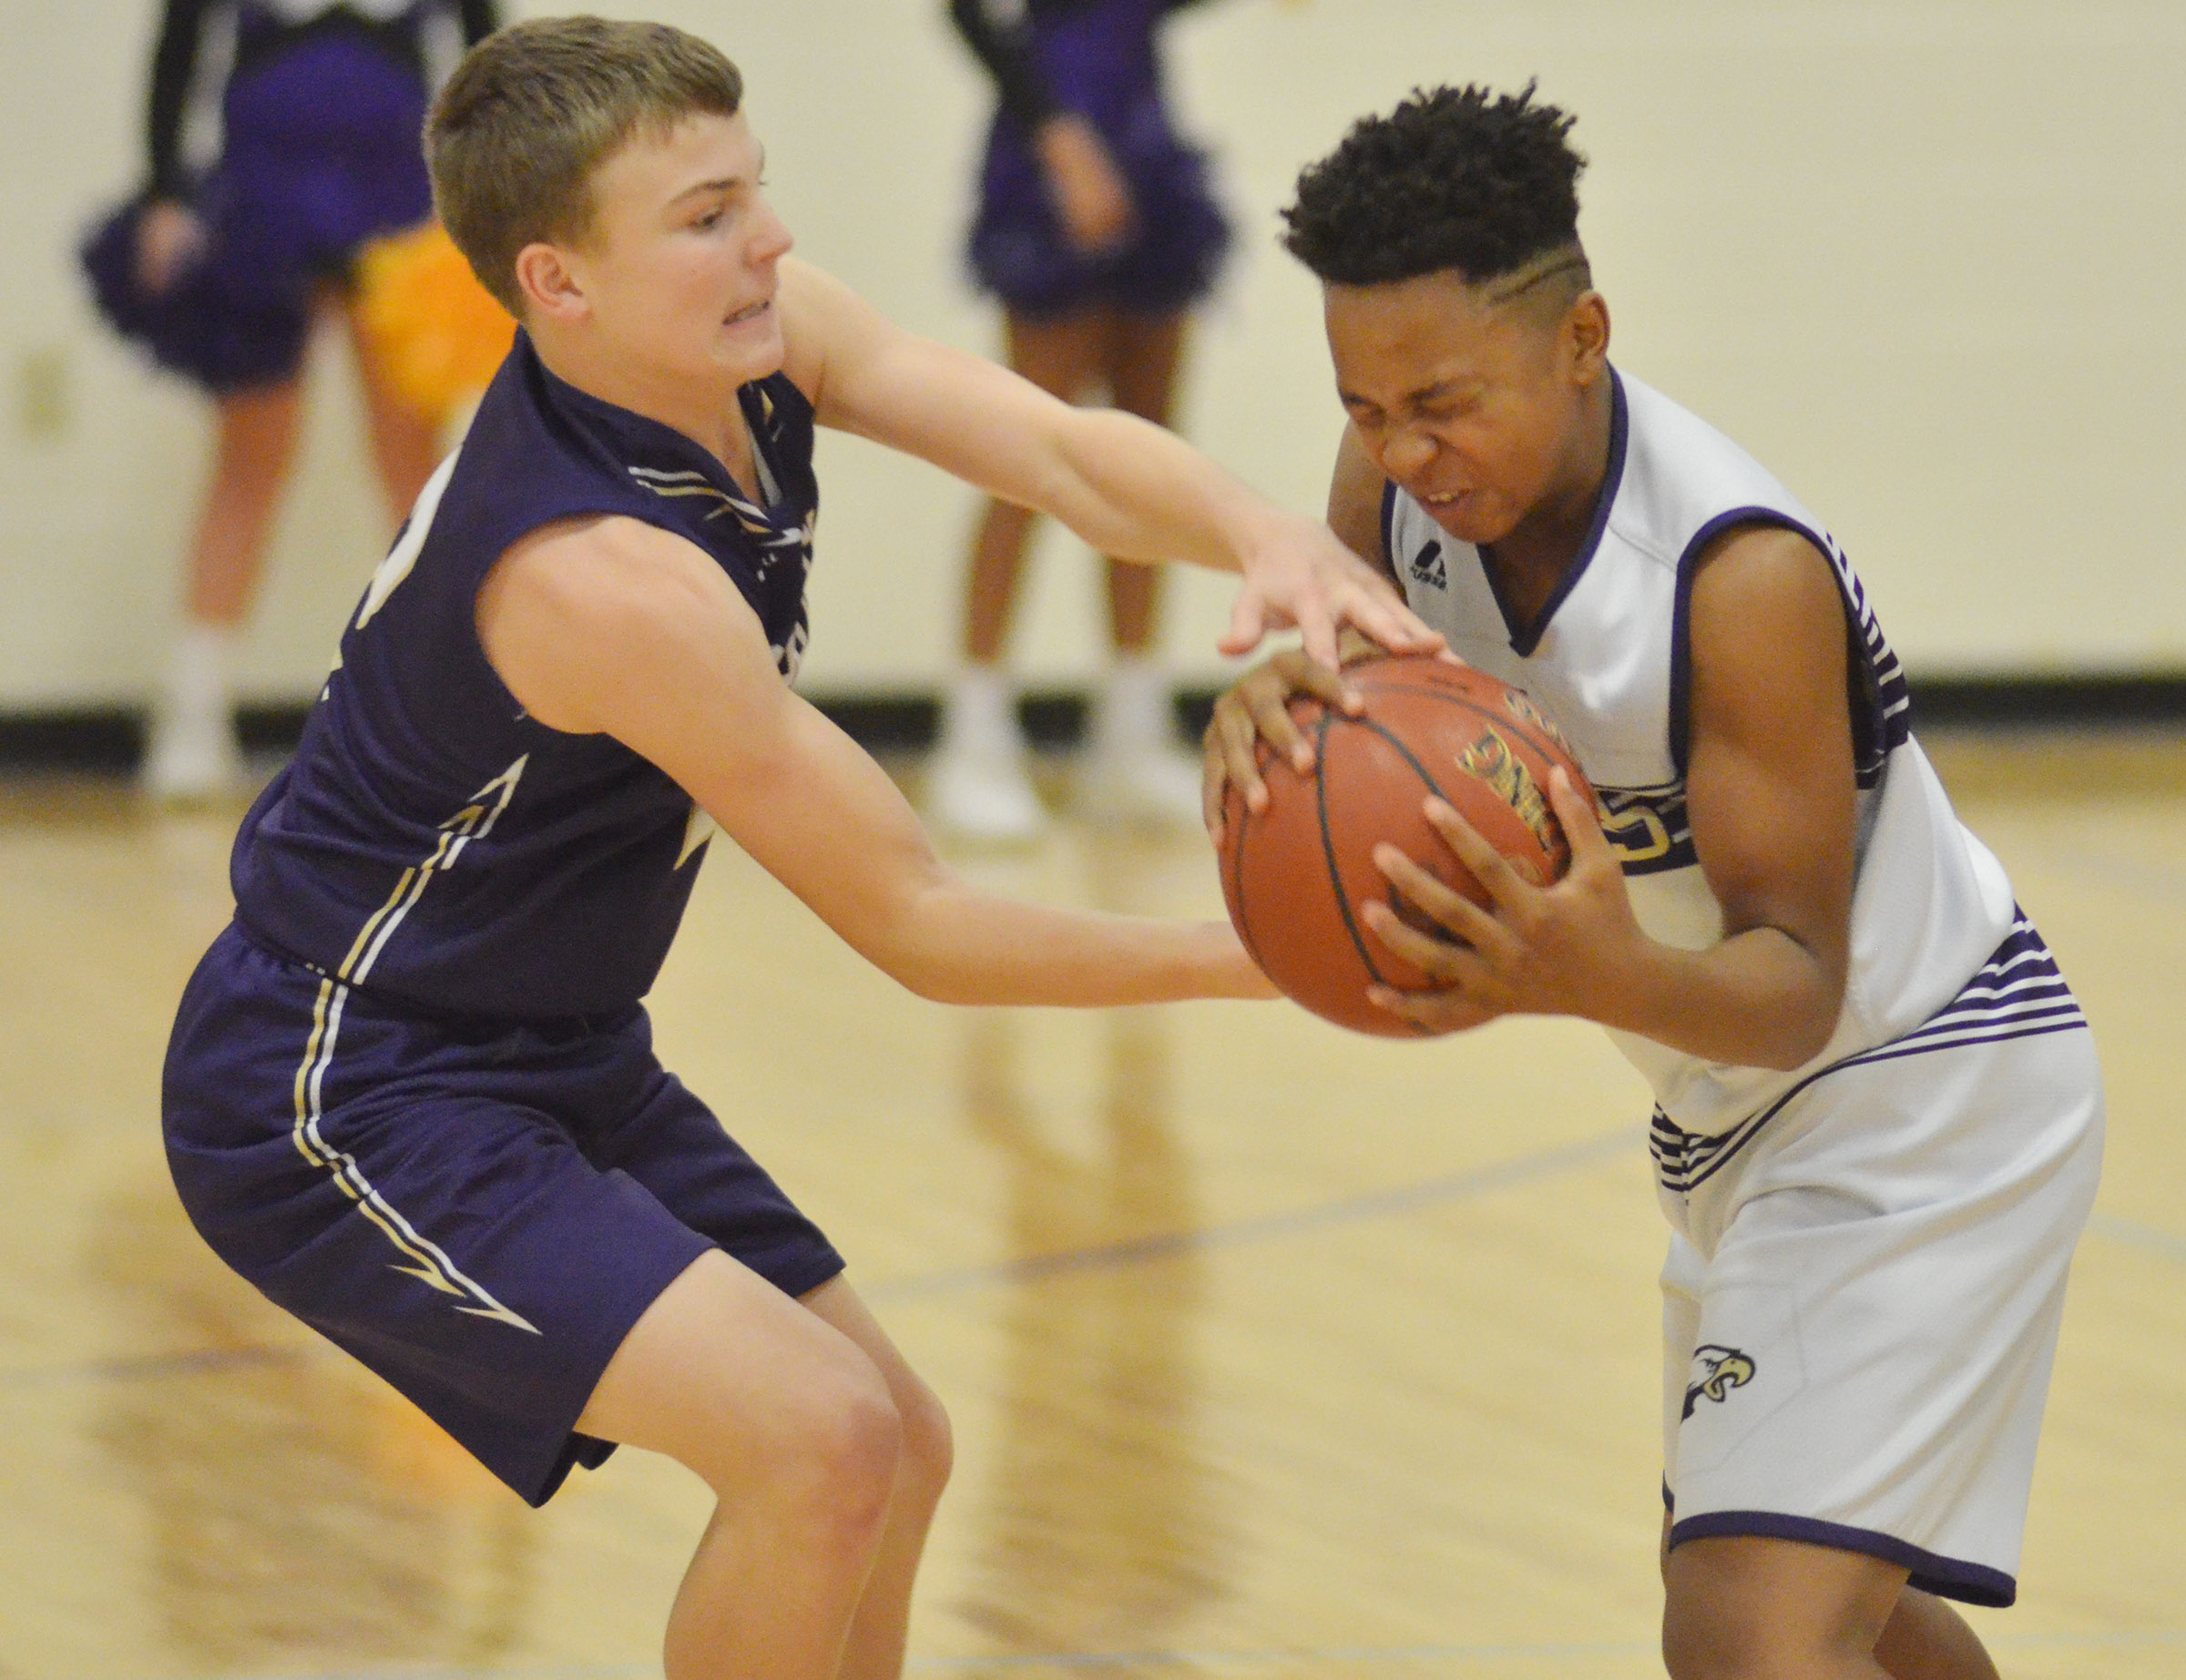 CMS seventh-grader Deondre Weathers fights for the ball.